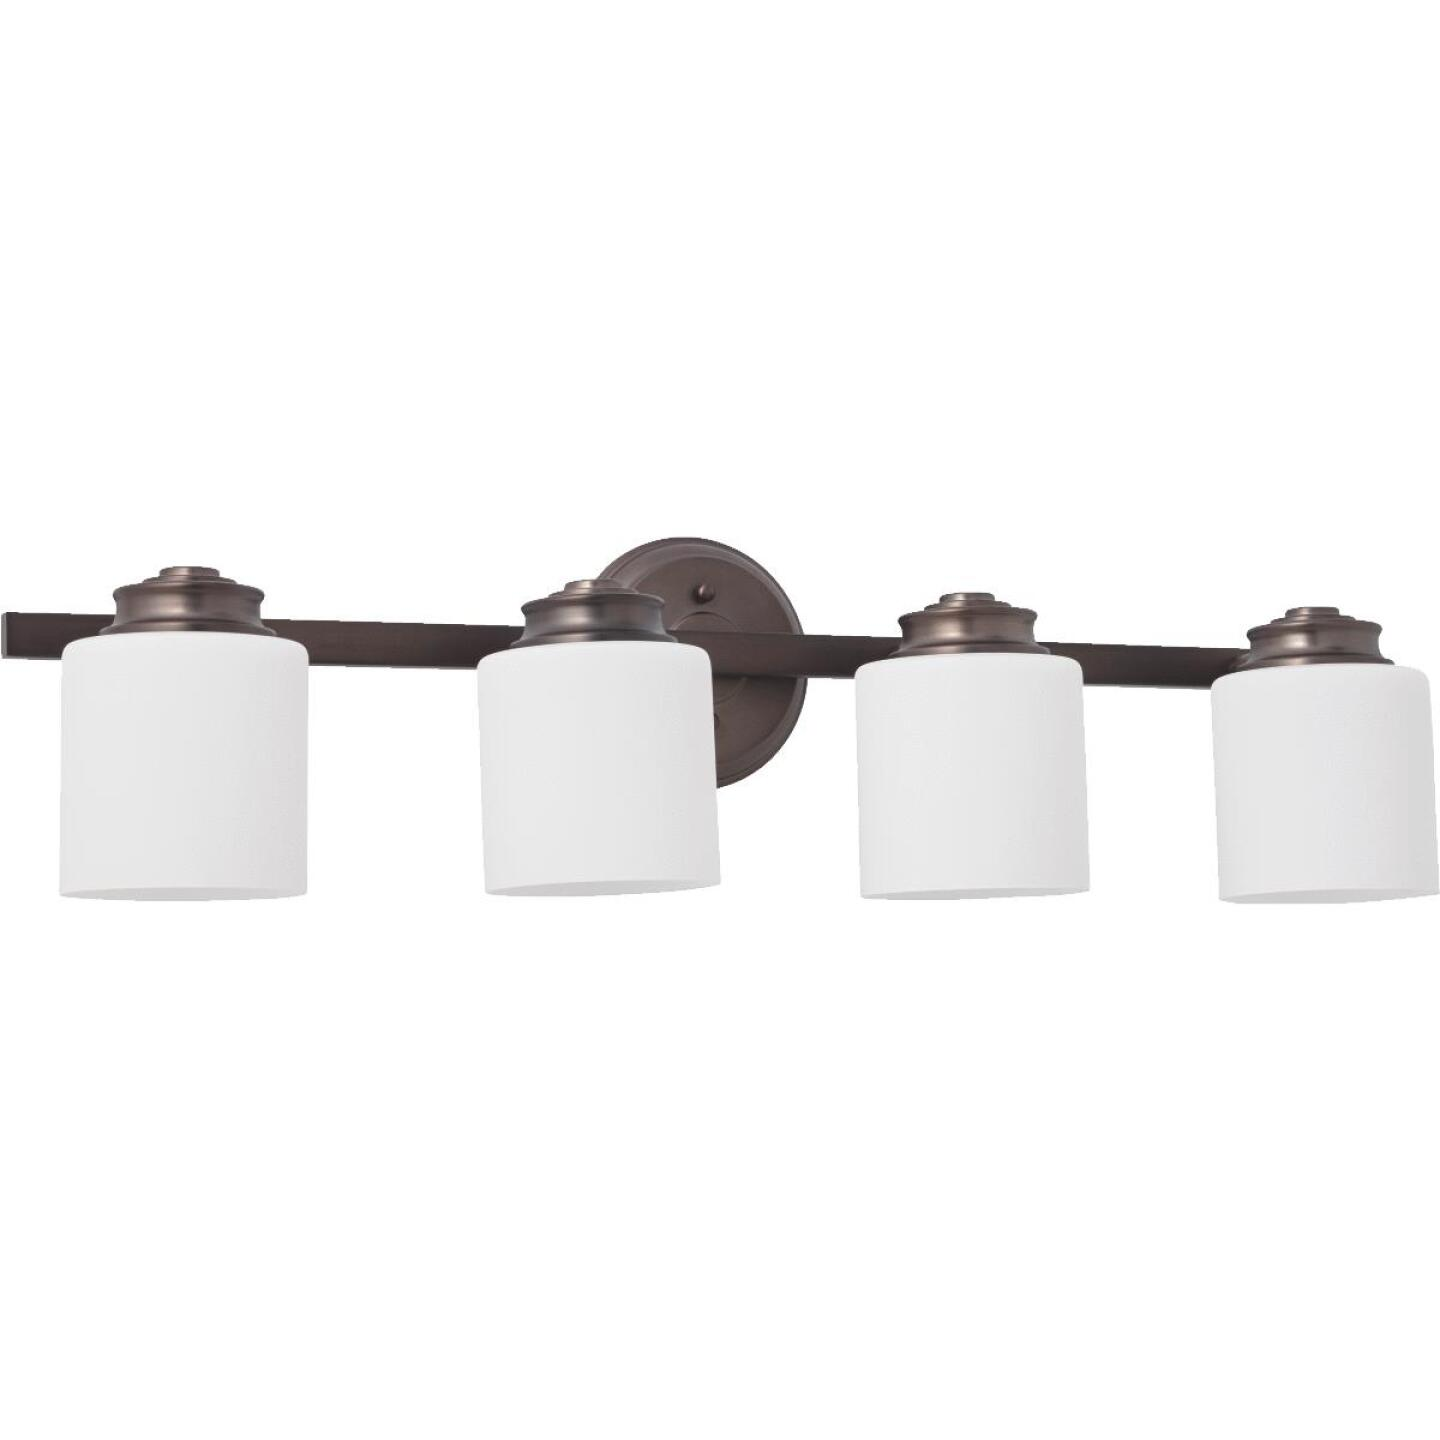 Home Impressions Crawford 4-Bulb Oil Rubbed Bronze Bath Light Bar Image 1